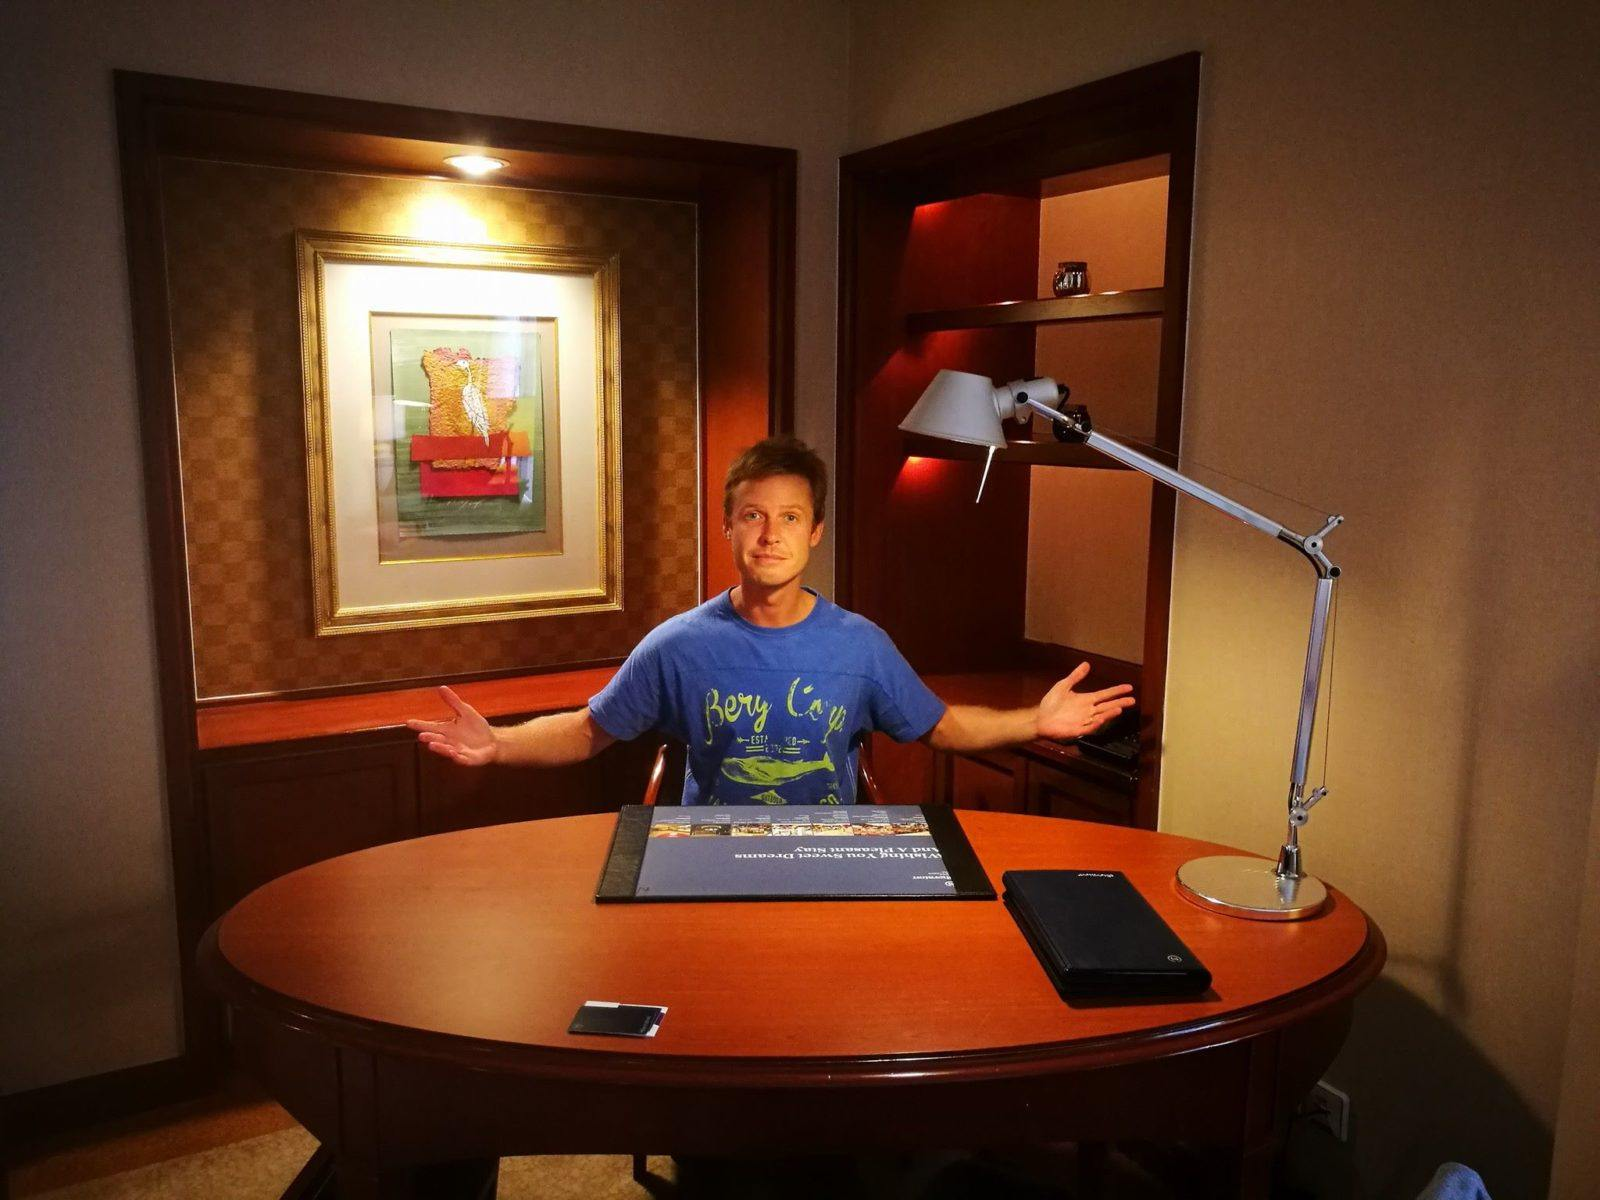 Hotel Cyber Attacks 7 Ways Guests Can Stay Safe1